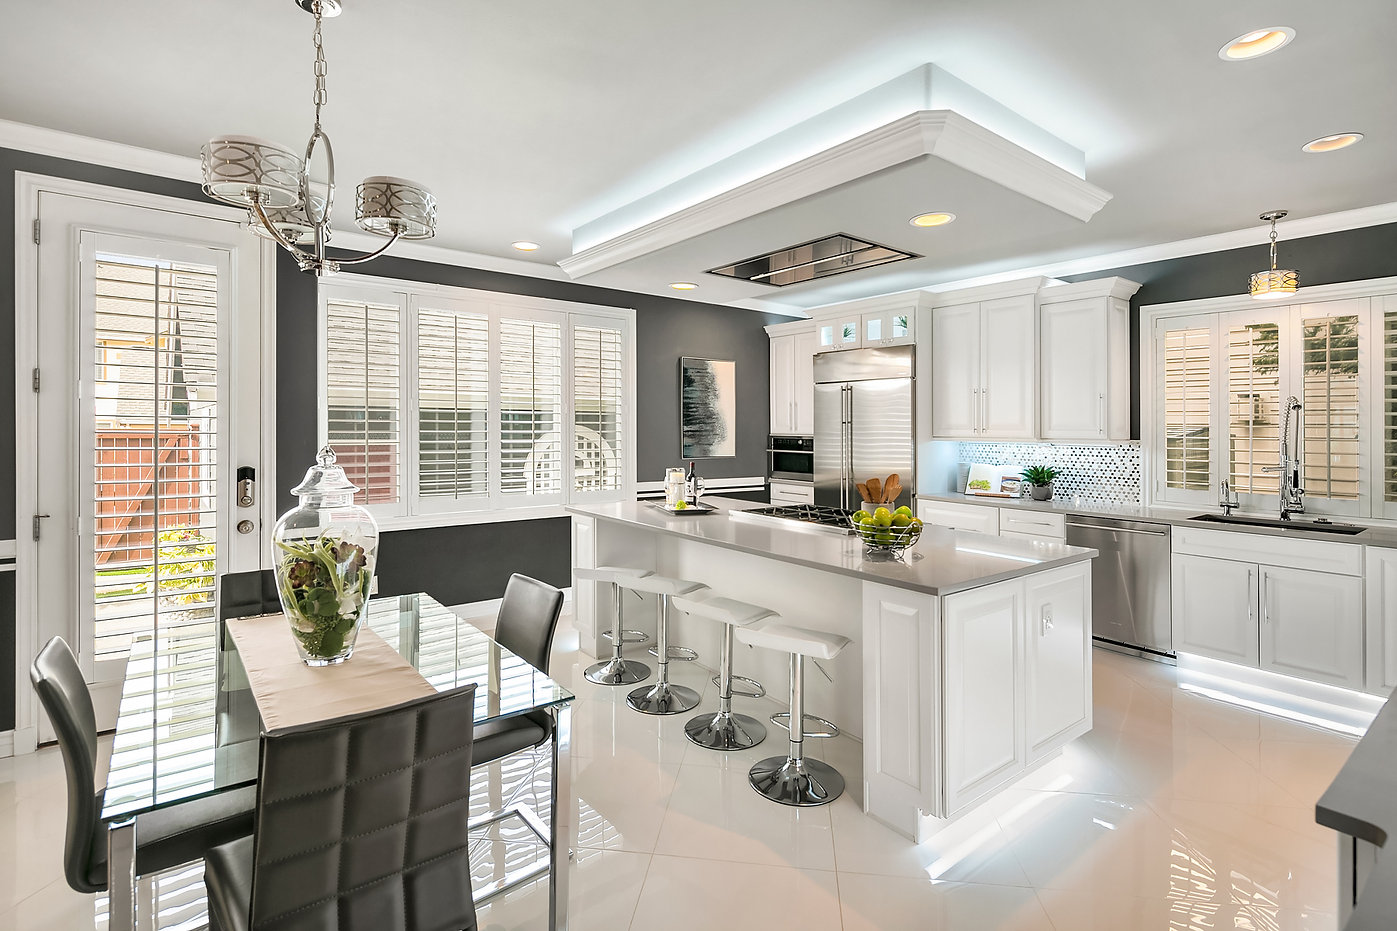 NKBA design winner kitchen modern white and grey Amanda George Interior Design